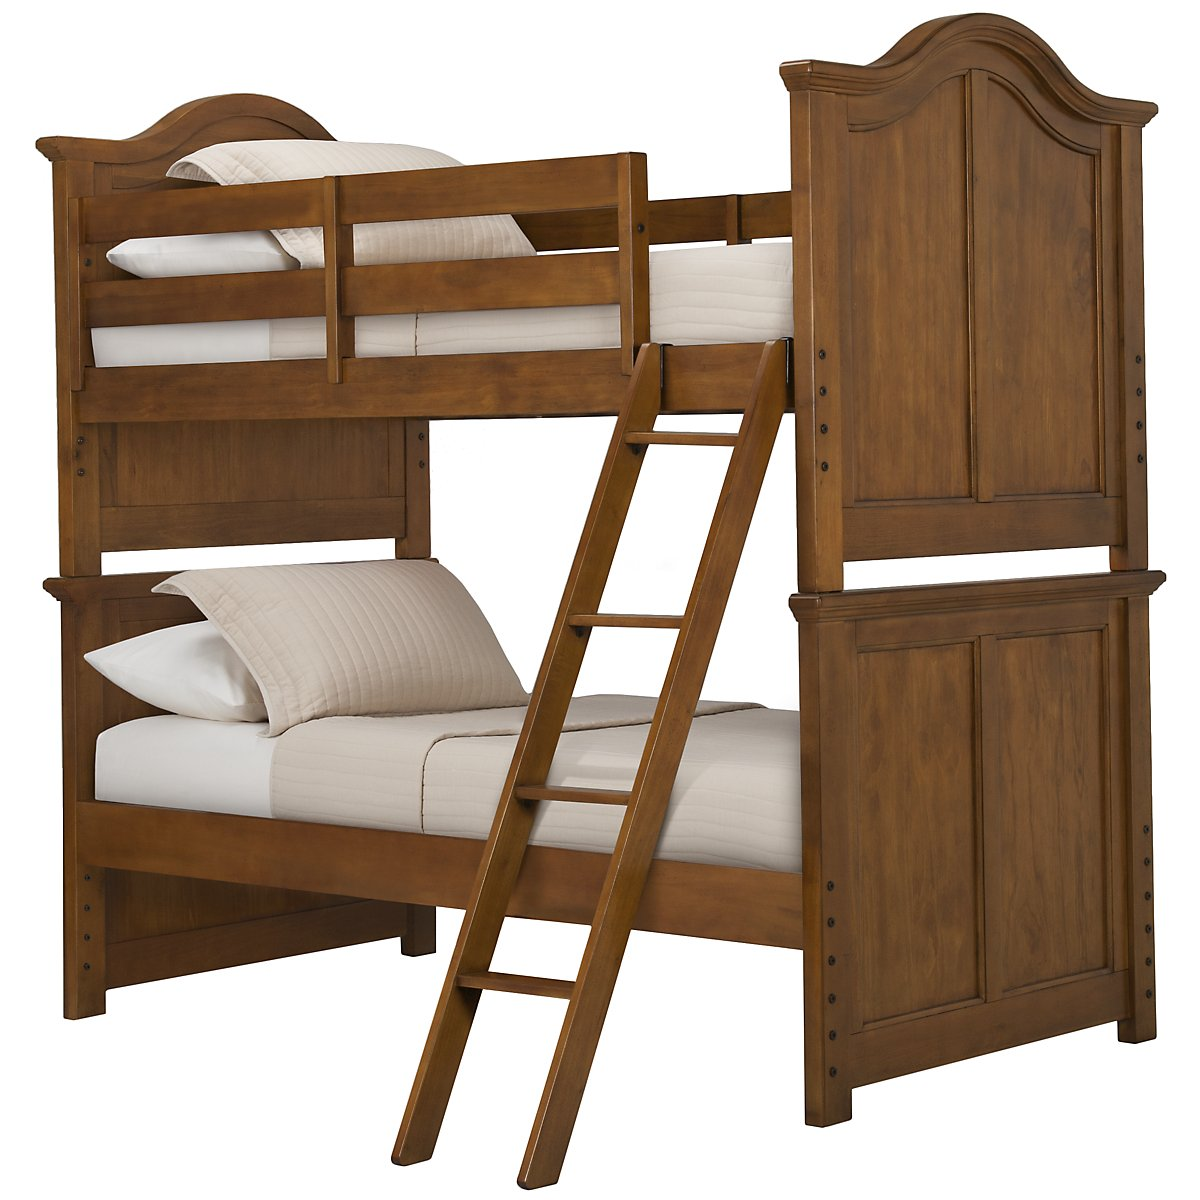 Claire Mid Tone Bunk Bed